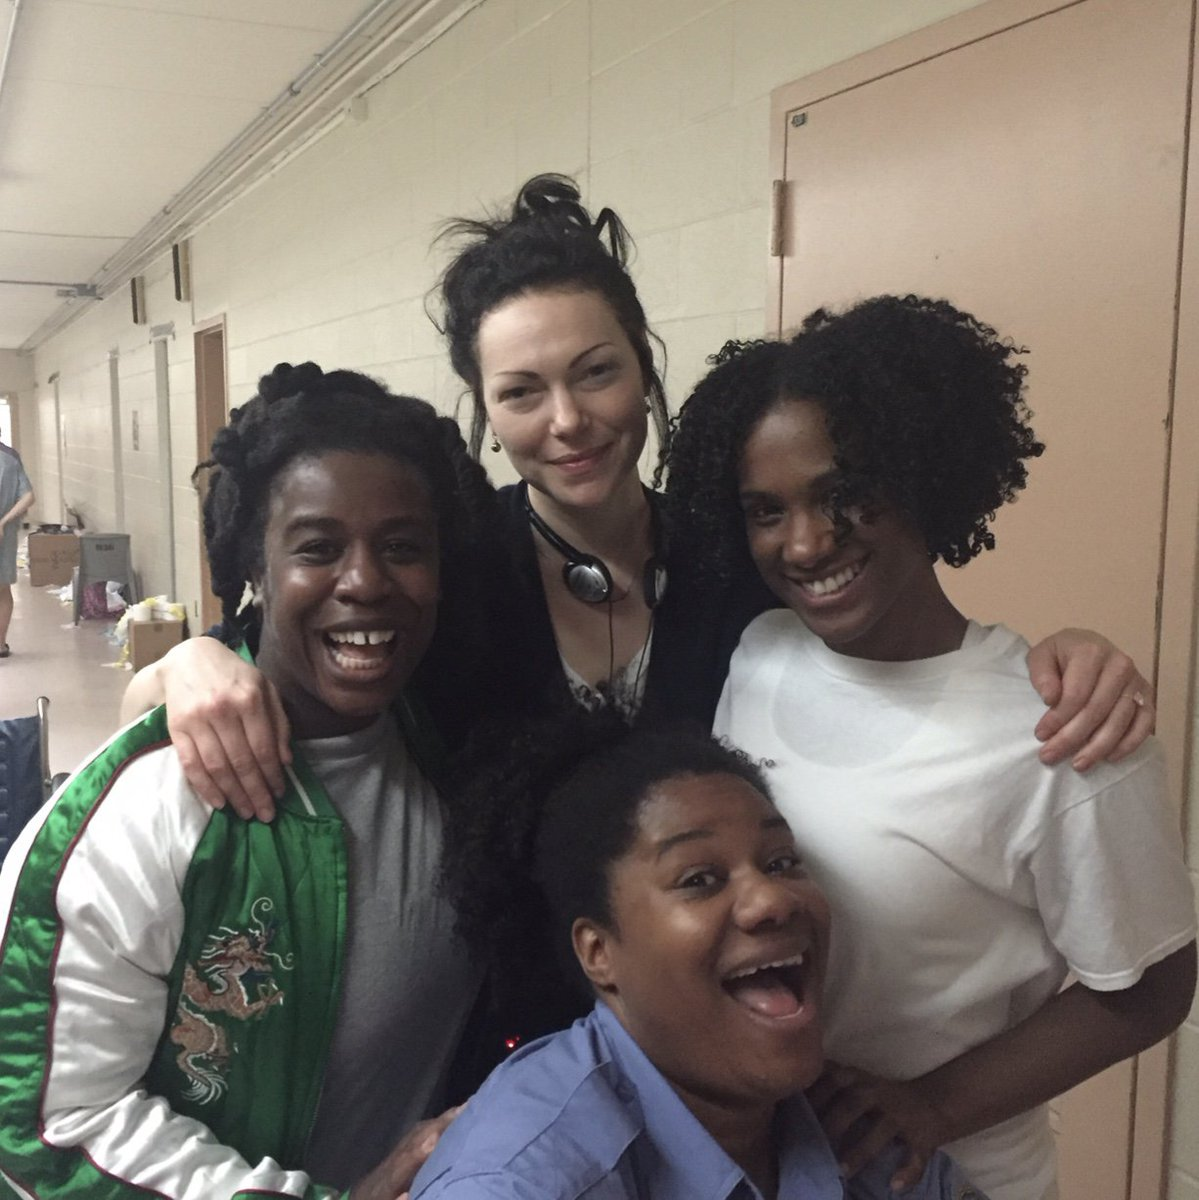 #ThrowbackThursday to directing these amazing ladies last year during Season 5 of #OITNB  #tbt #orangefamily<br>http://pic.twitter.com/OLzS4bVzwA